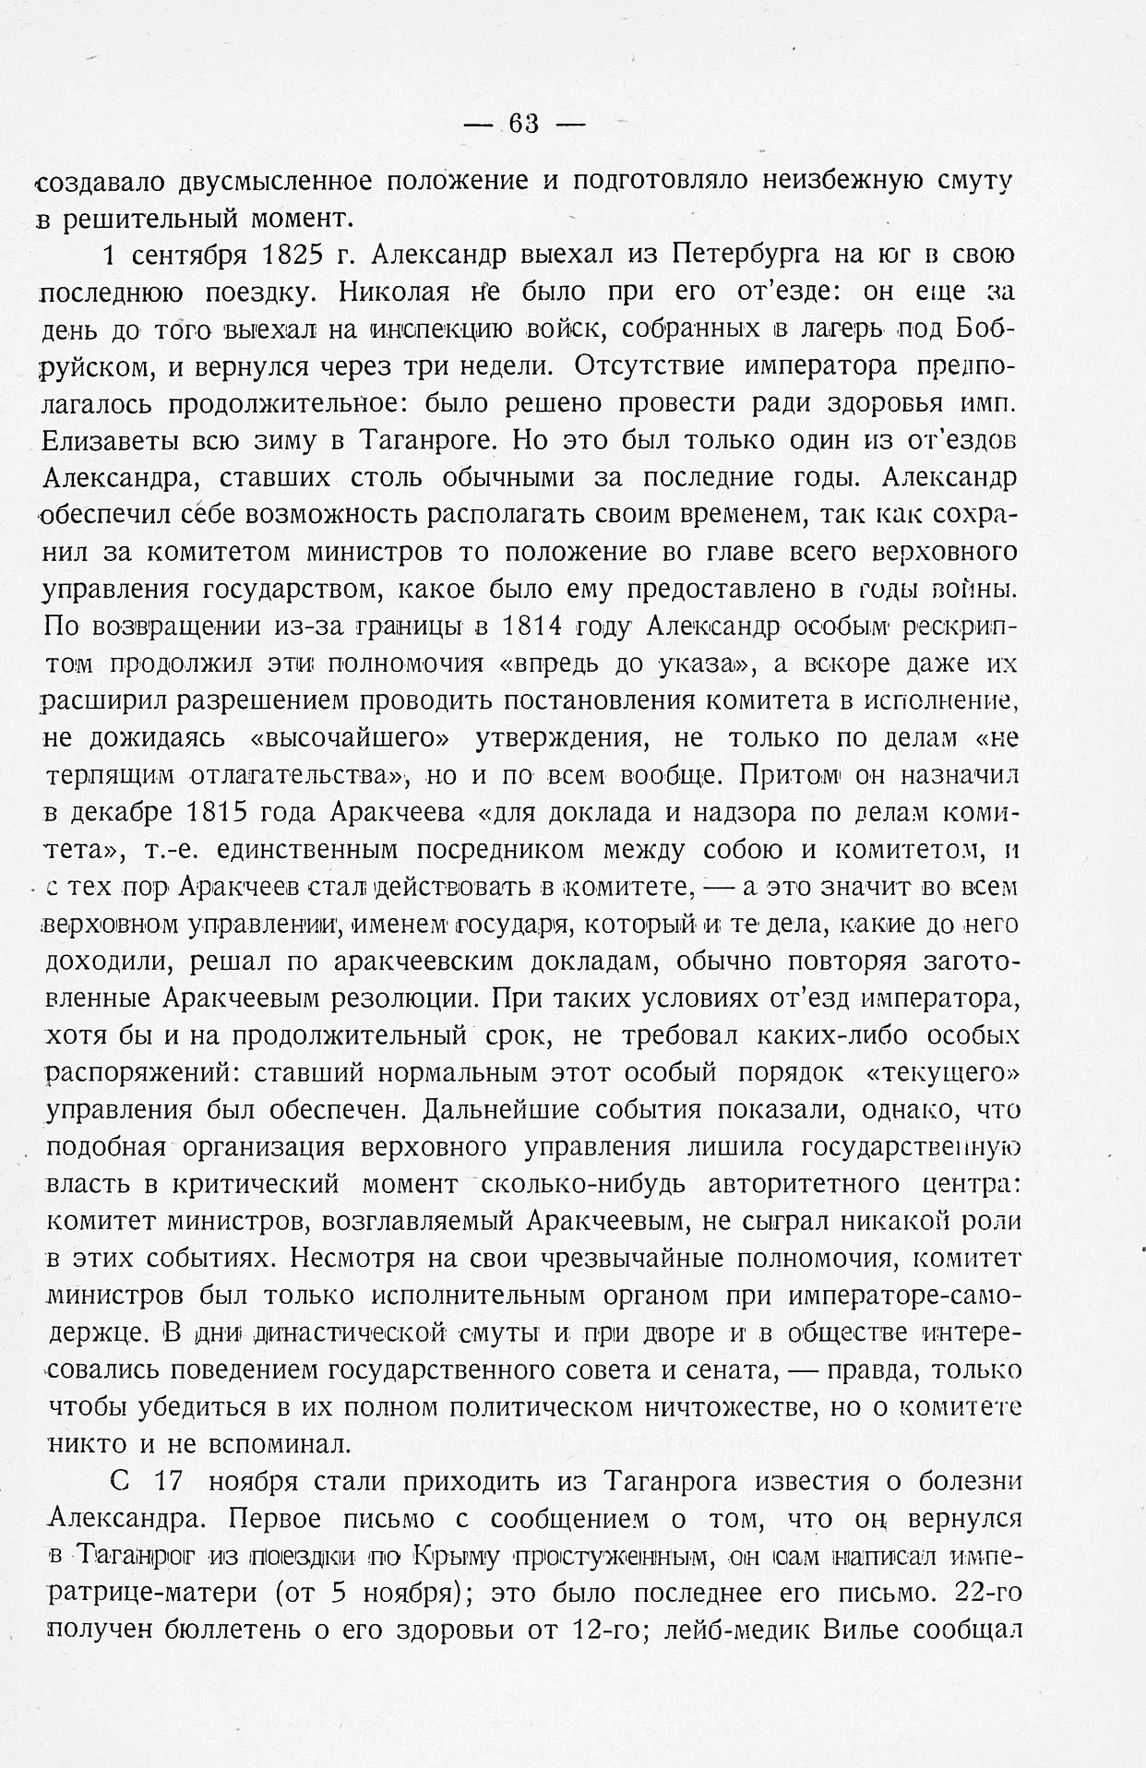 http://elib.shpl.ru/pages/565960/zooms/7